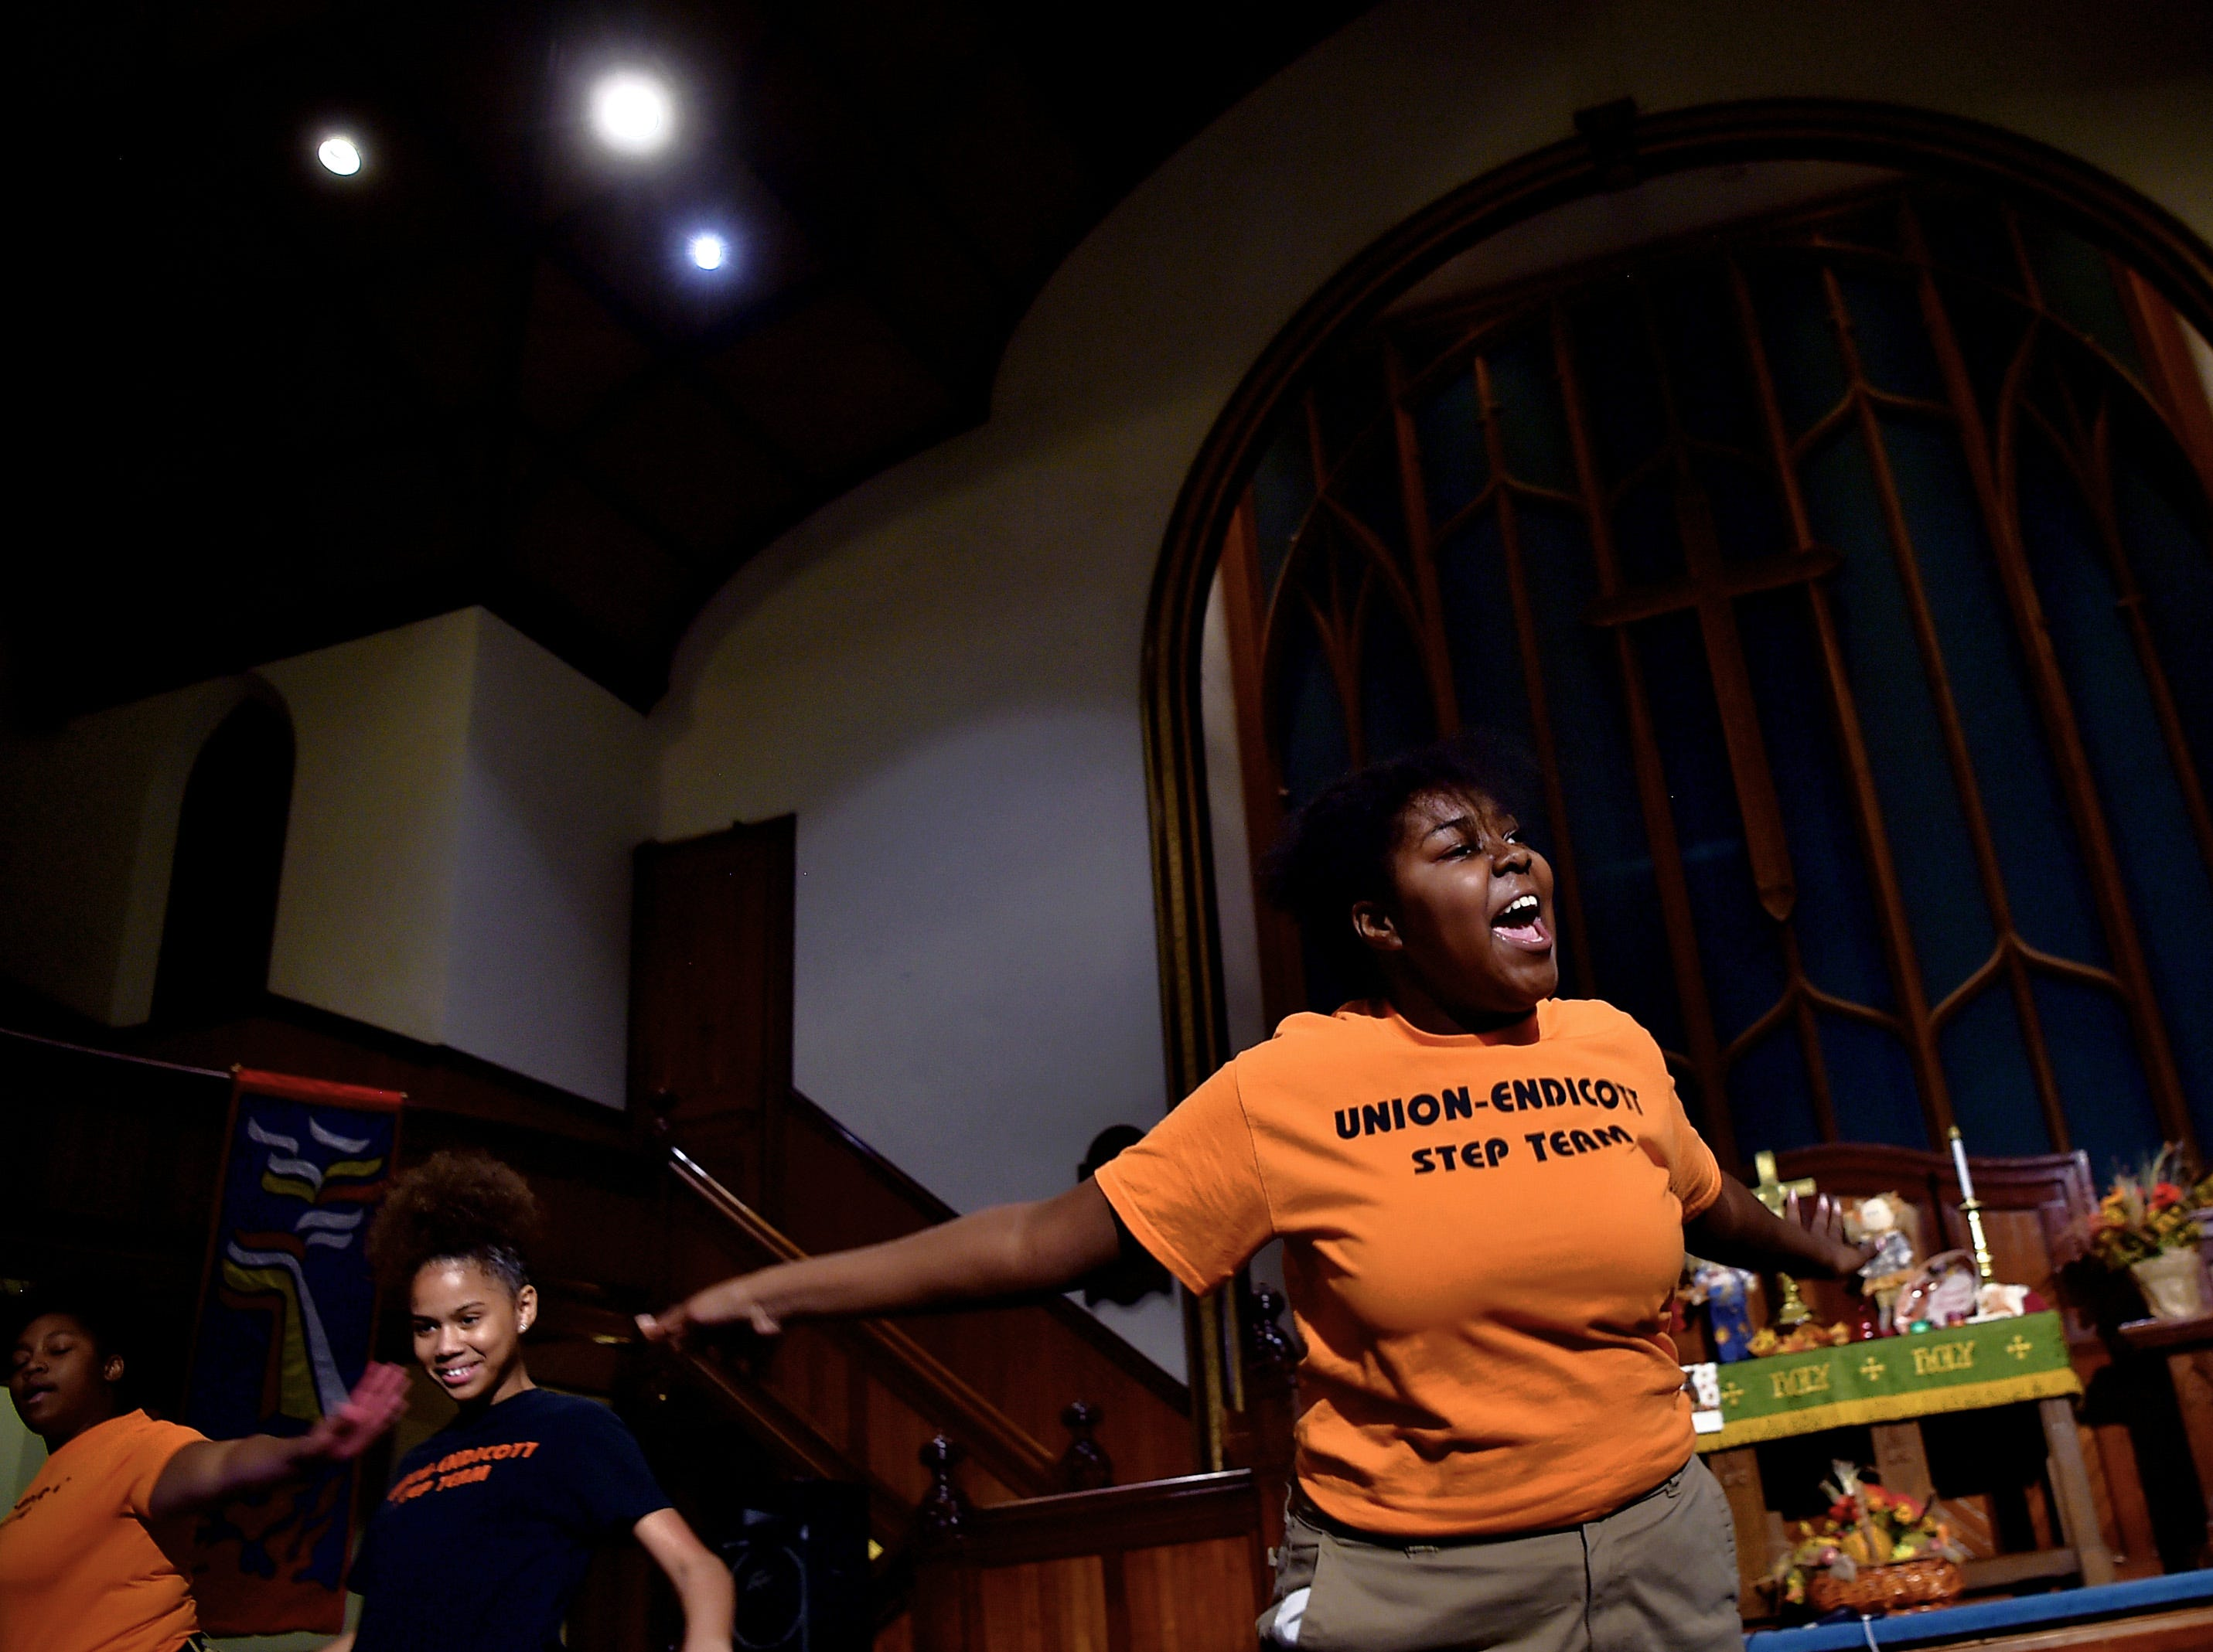 Members of the Union-Endicott Step Team during ONE ACCORD at Tabernacle United Methodist Church in Binghamton on October 26, 2018.